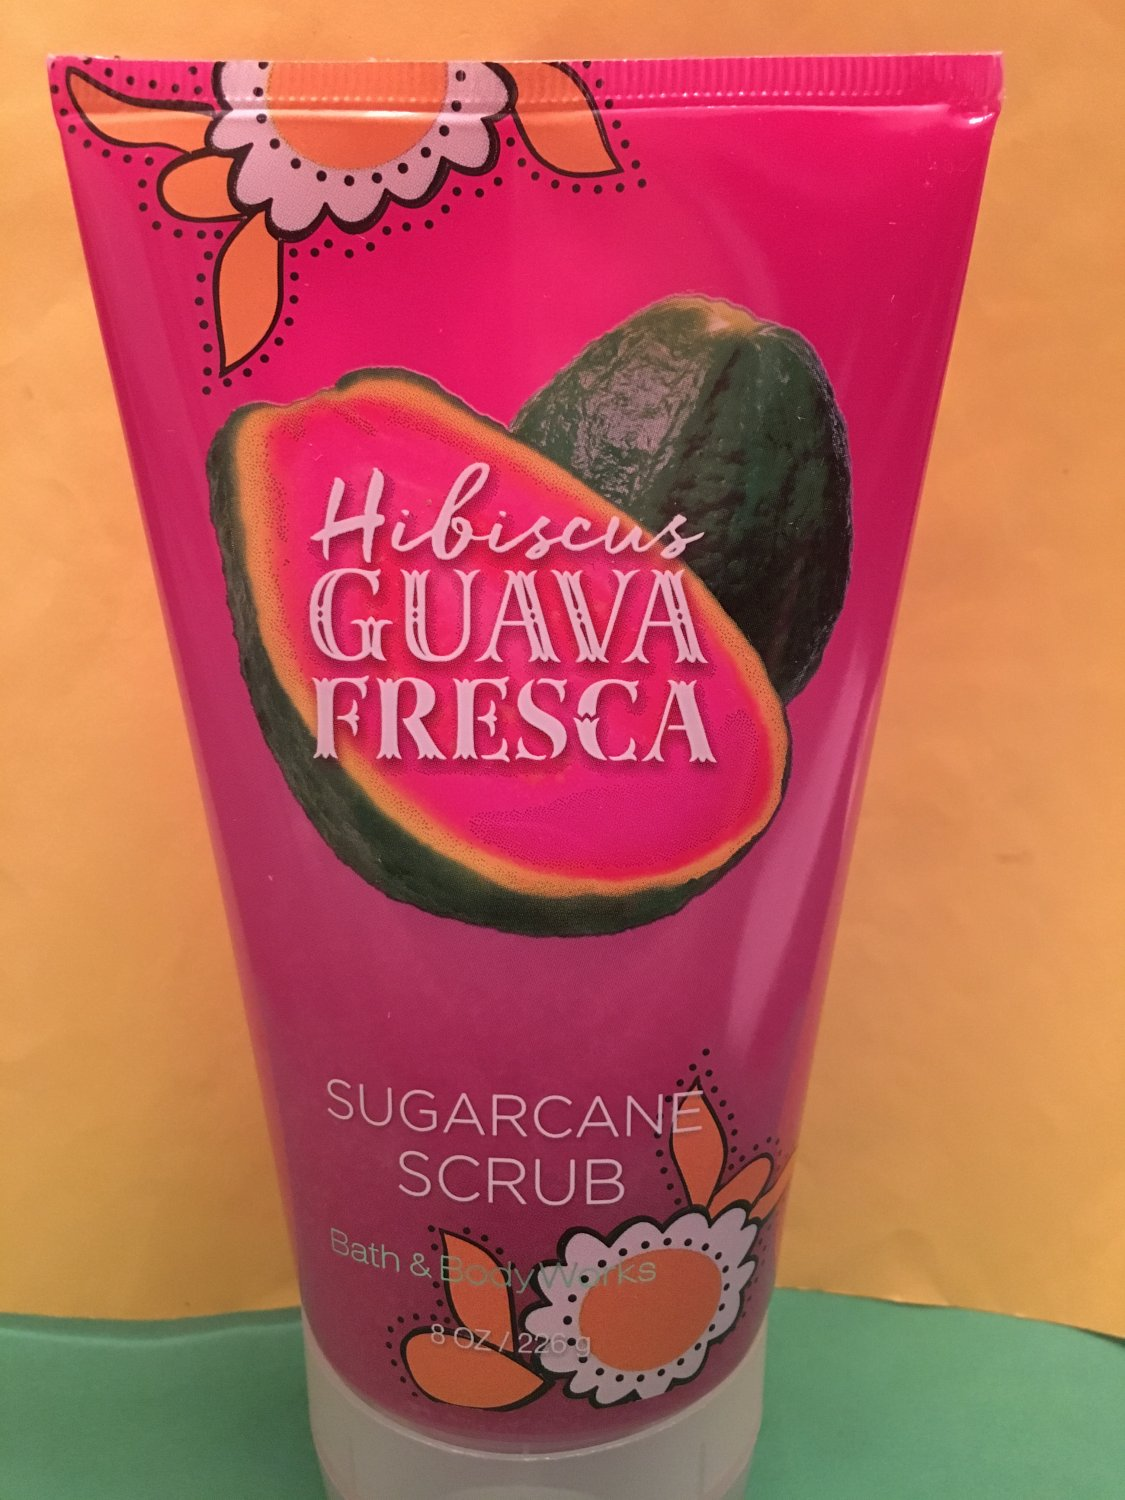 Bath & Body Works Hibiscus Guave Fresca Sugarcane Scrub